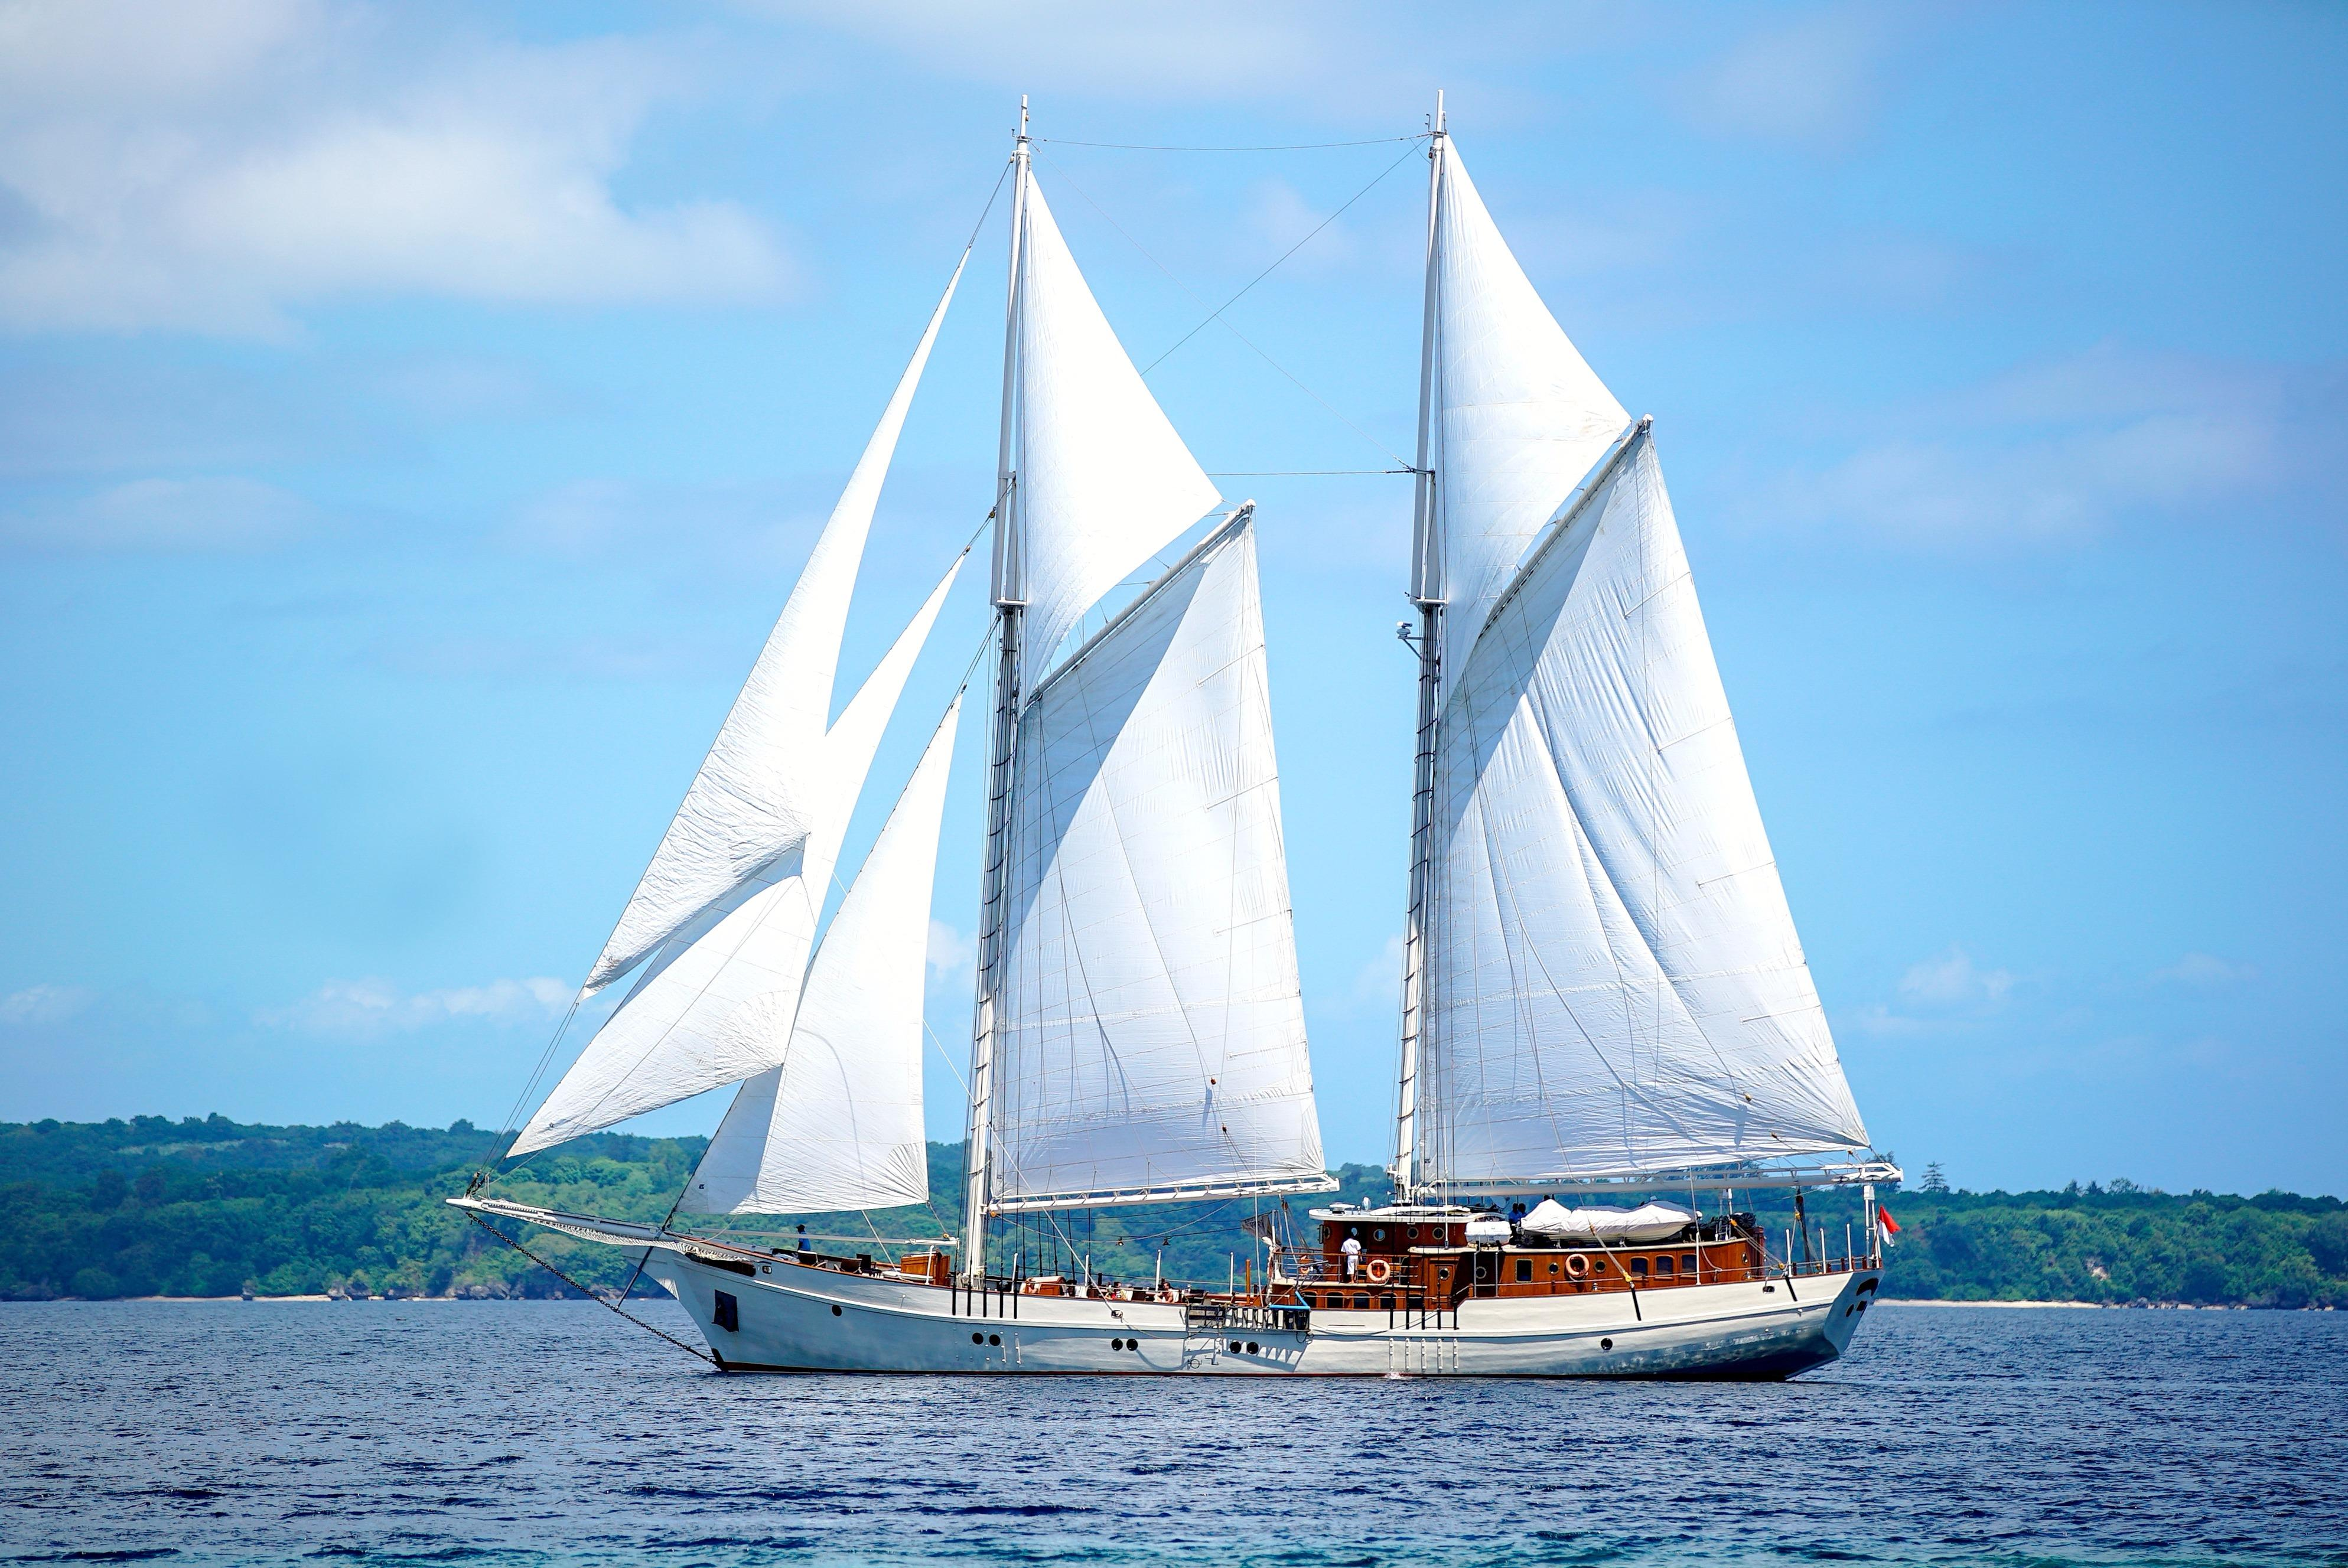 2009 Classic Schooner Sail Boat For Sale Wwwyachtworldcom